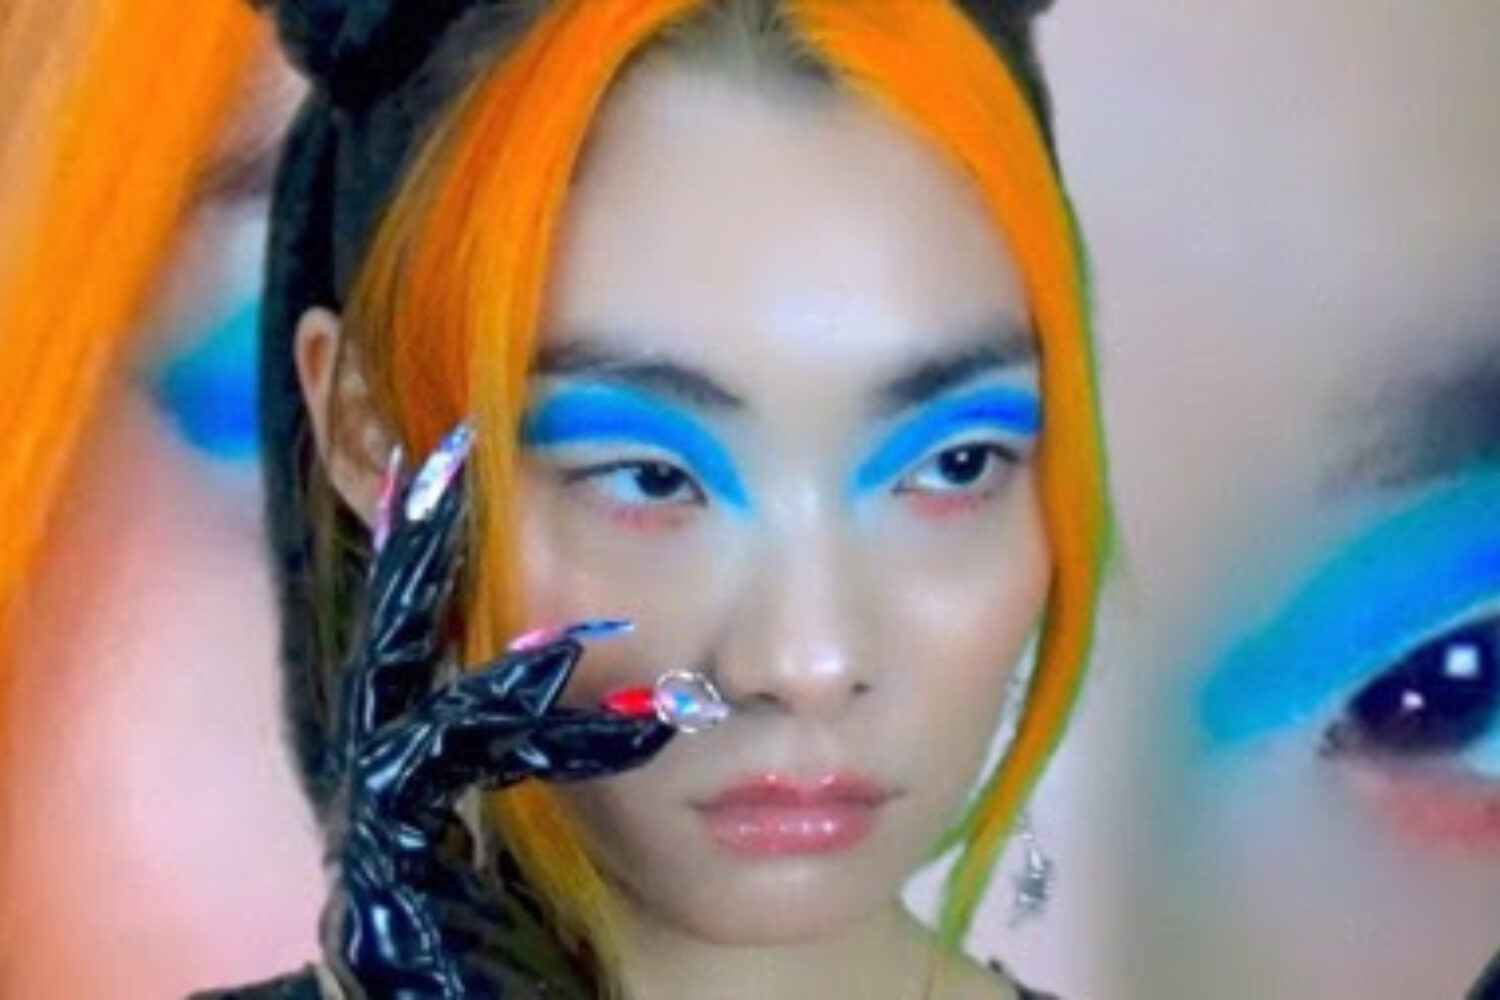 Rina Sawayama shares electrifying new video for 'Comme Des Garçons'